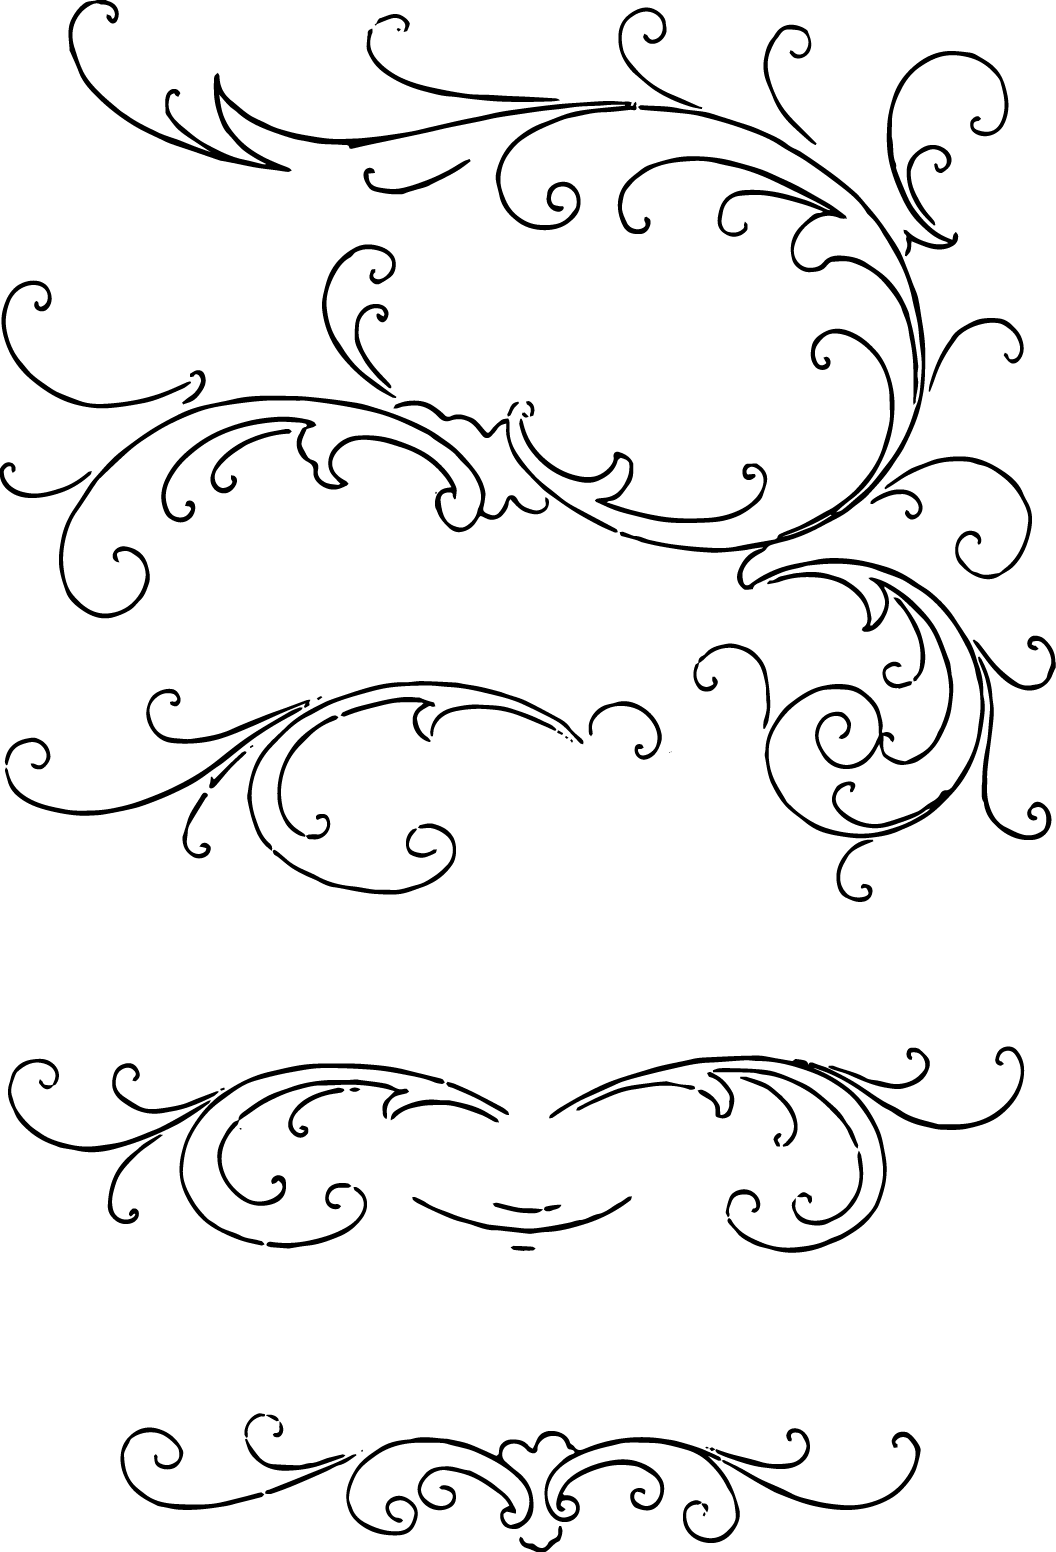 calligraphy vector flourishes